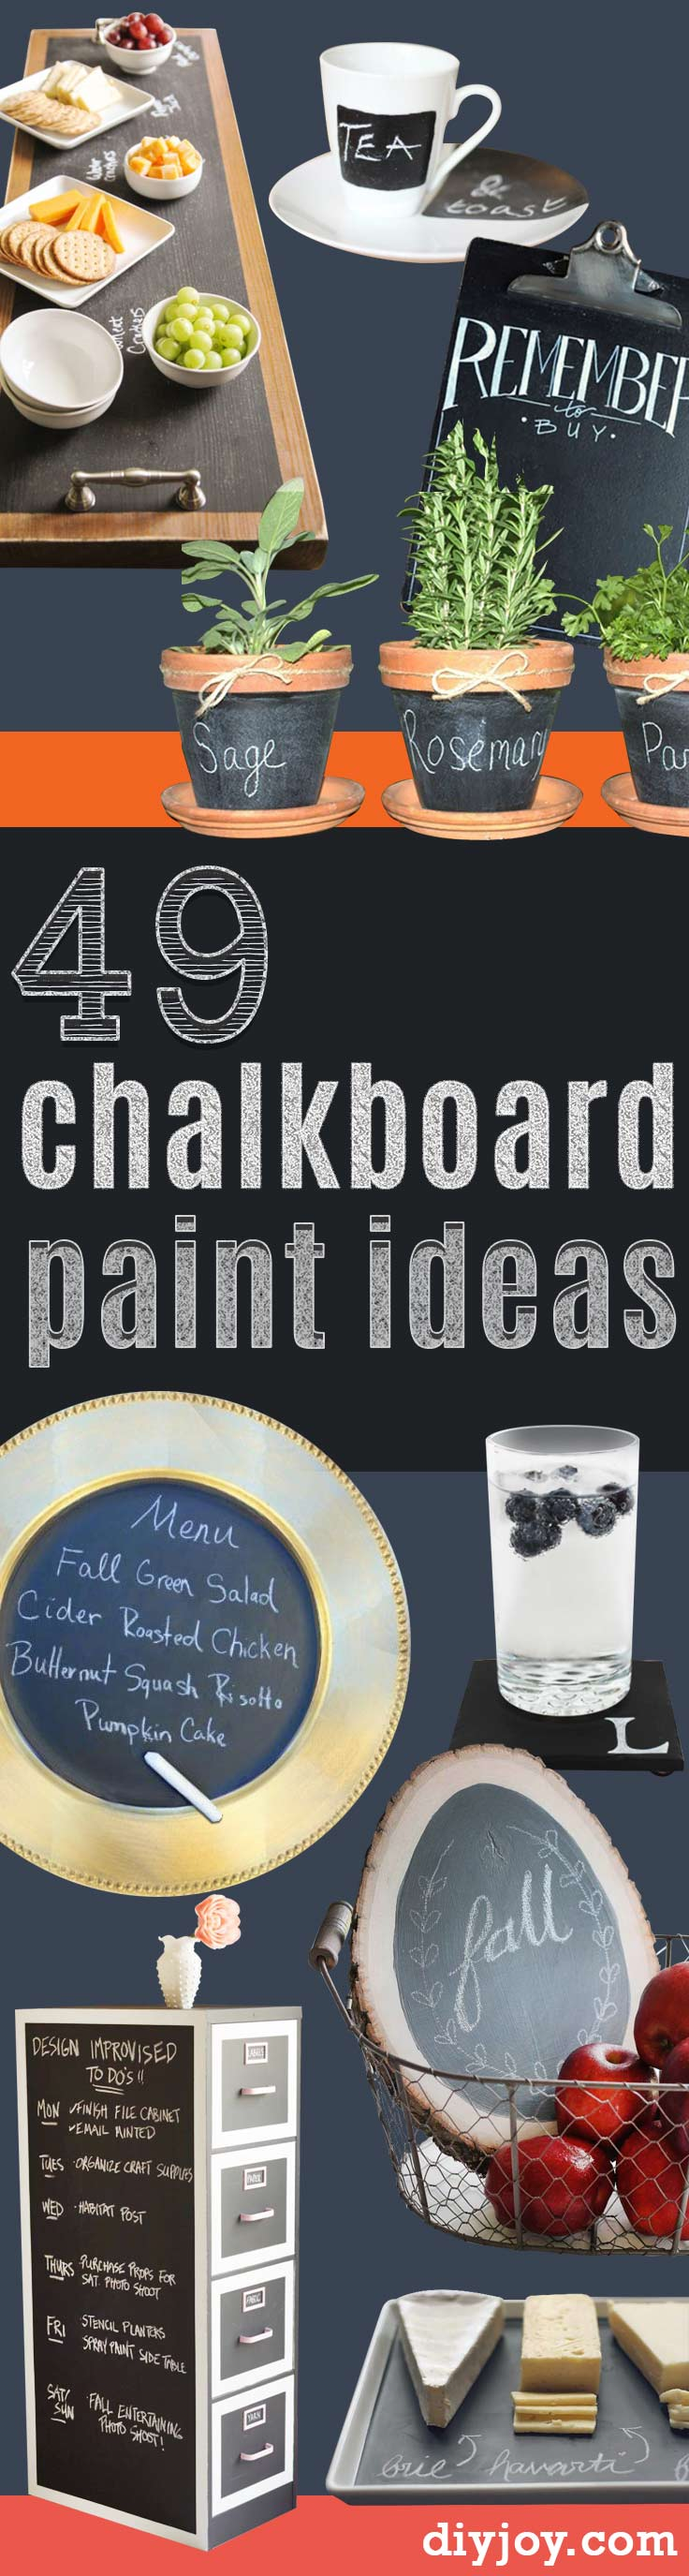 DIY Chalkboard Paint Ideas for Furniture Projects, Home Decor, Kitchen, Bedroom, Signs and Crafts for Teens.